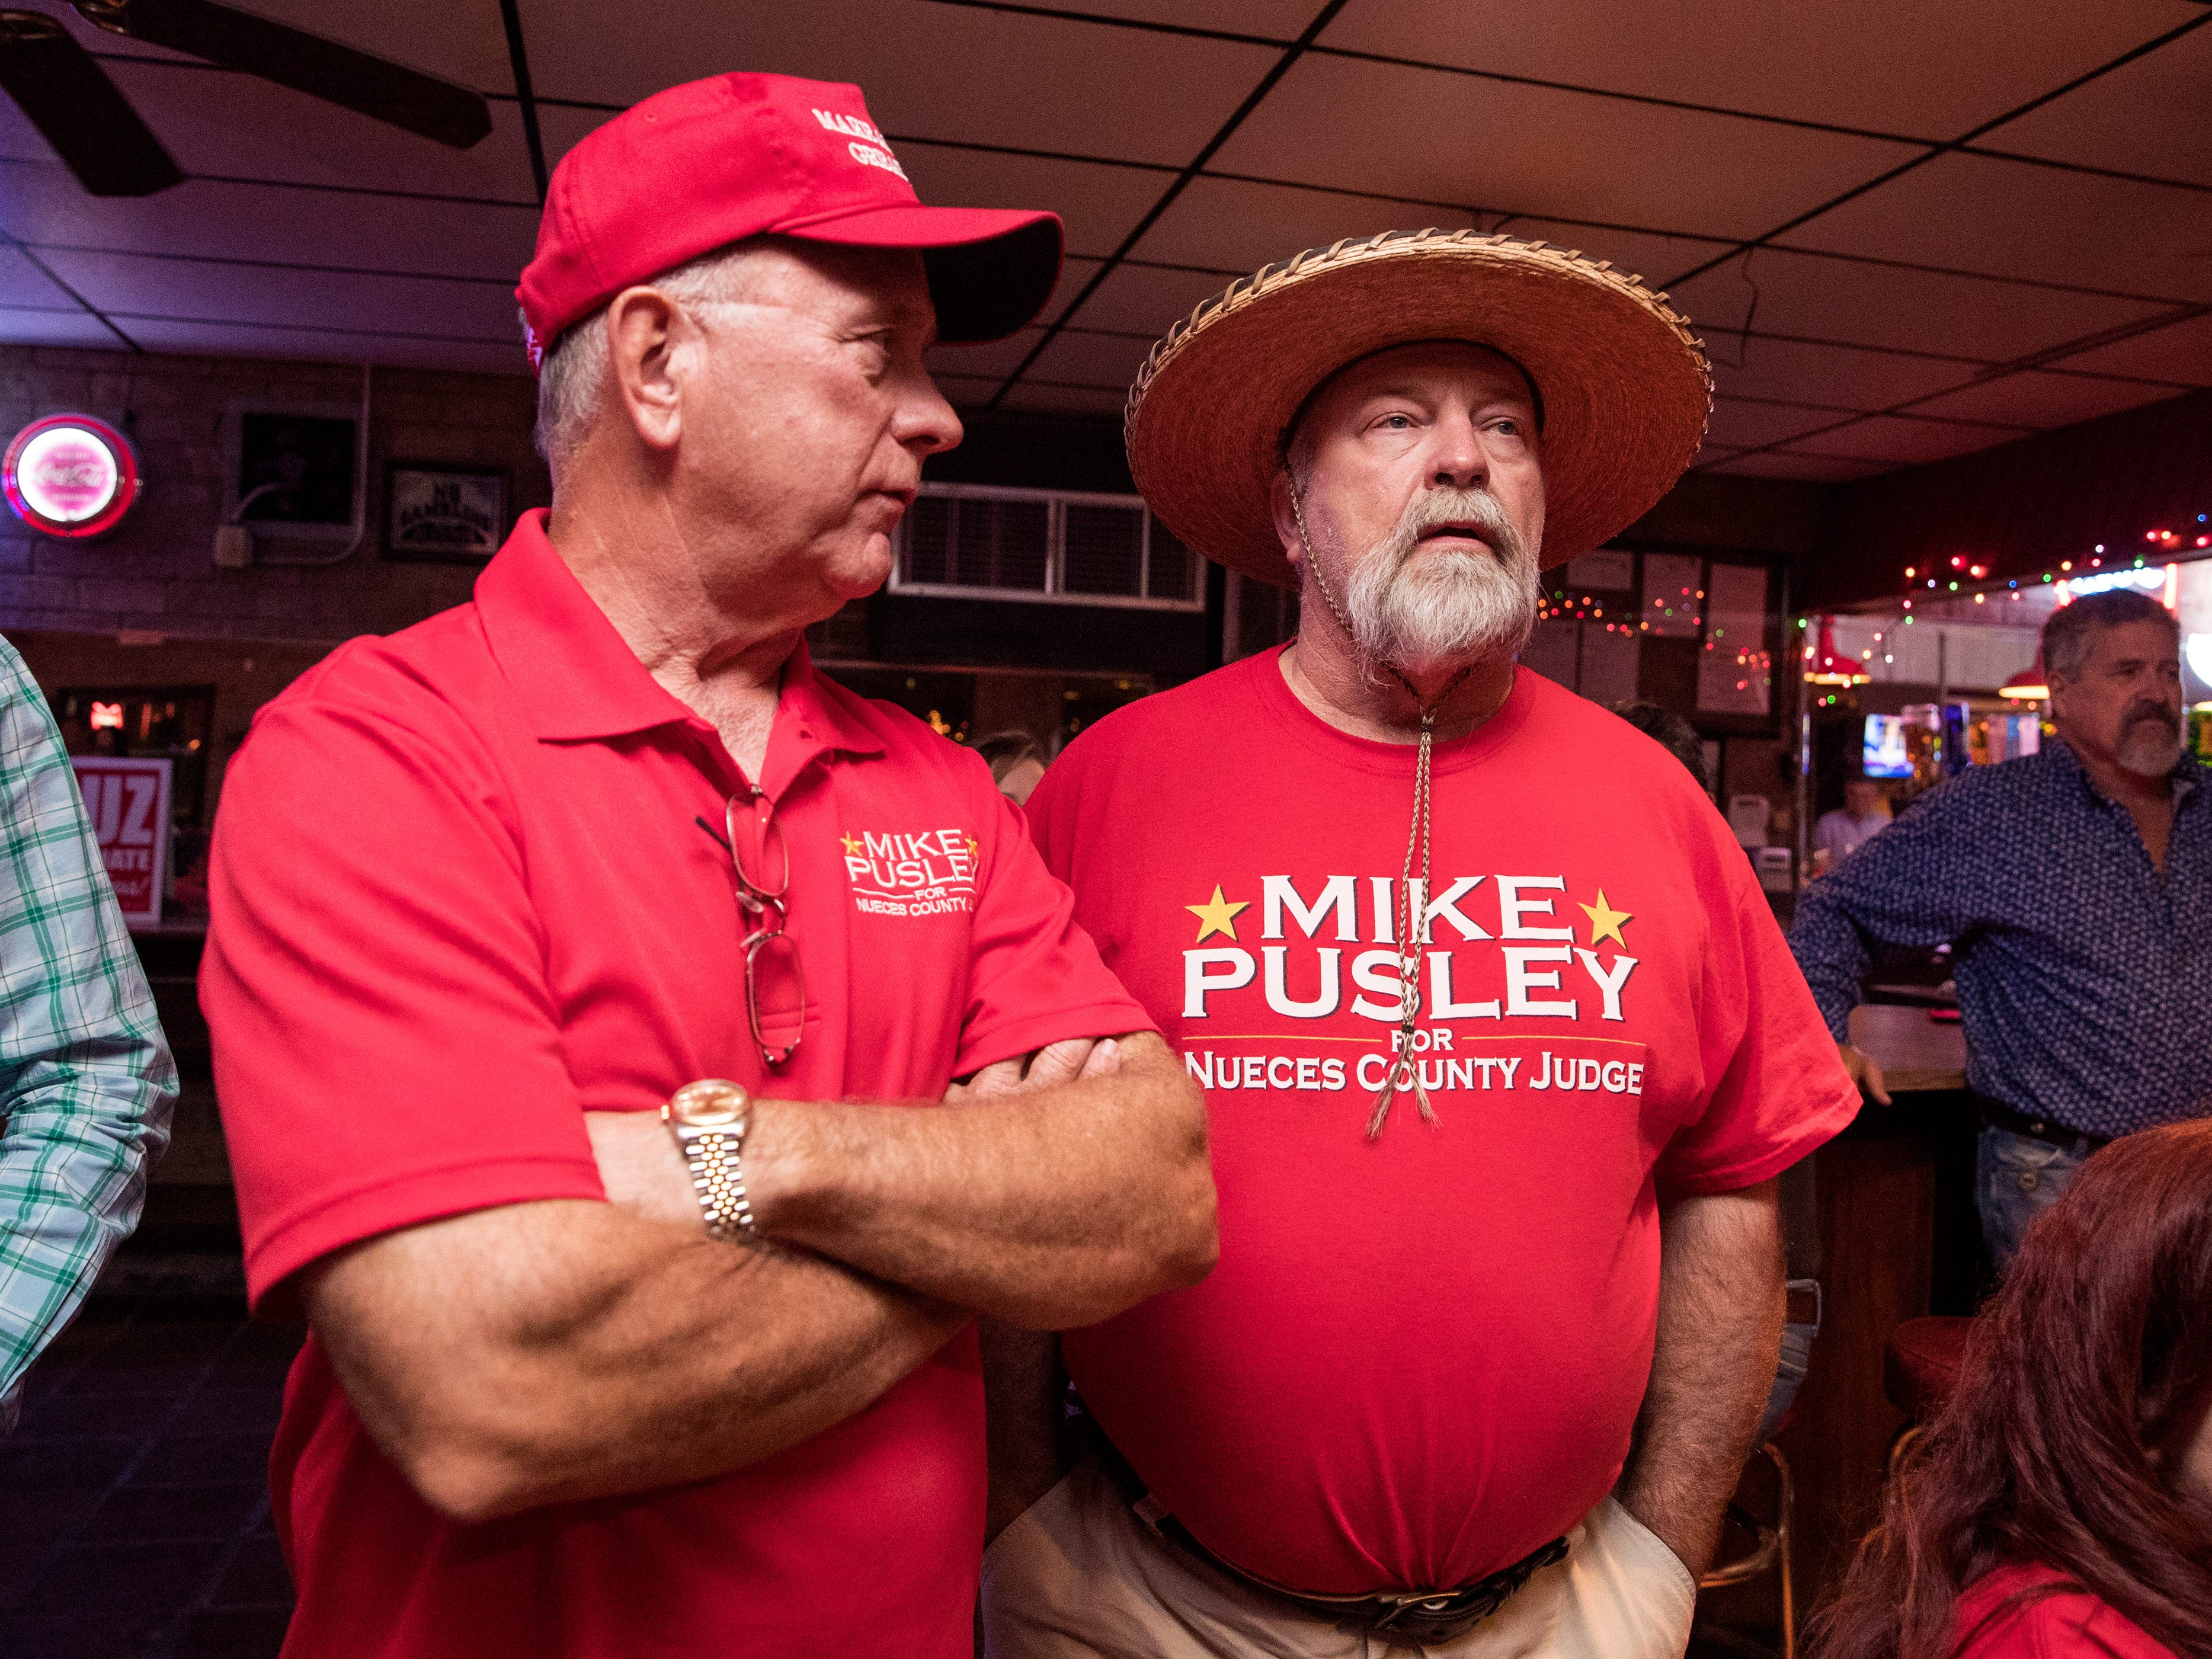 Republican candidate for Nueces County Judge Mike Pusley talks with his brother, Lance Pusley, about early voting numbers at the Bar-B-Q Man on Tuesday, November 6, 2018.